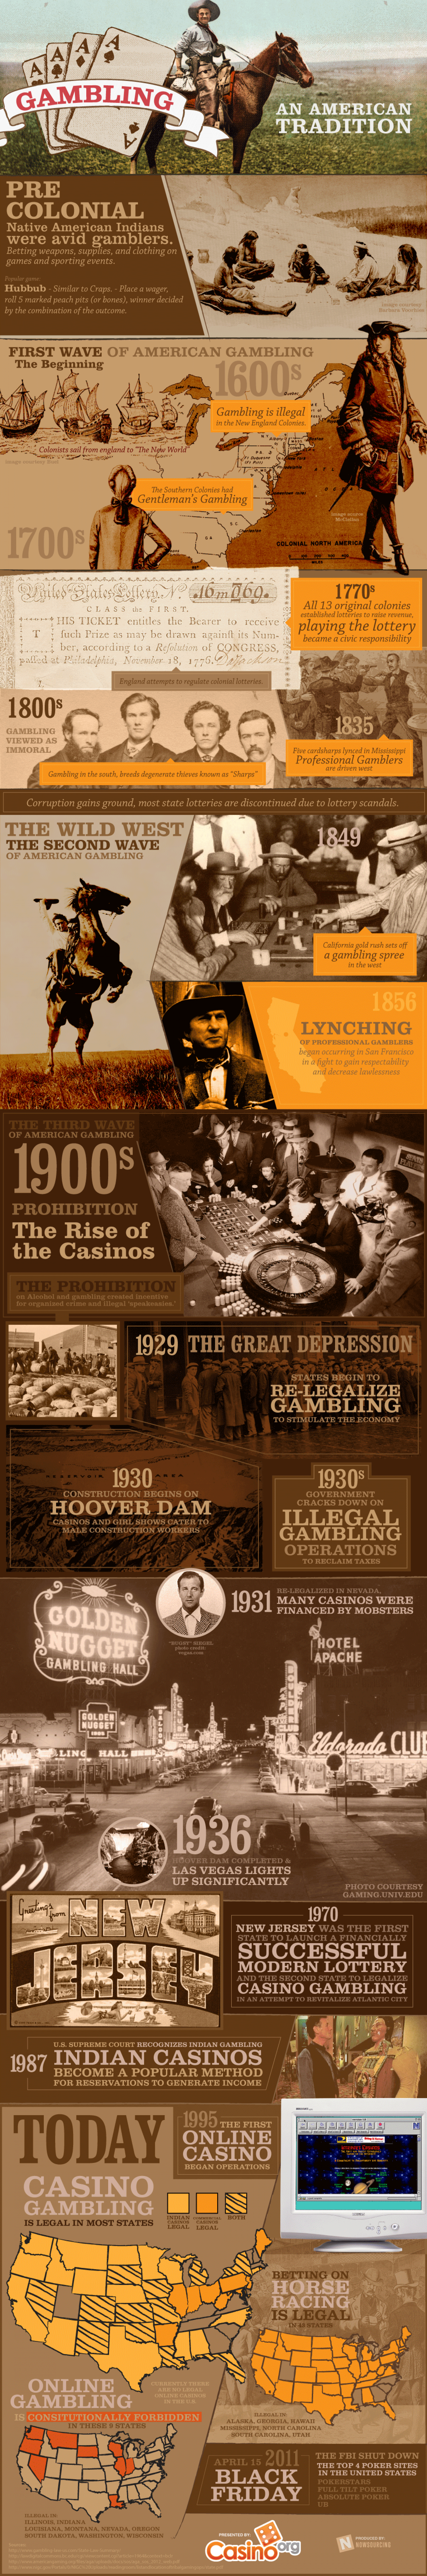 The History of American Gambling Infographic